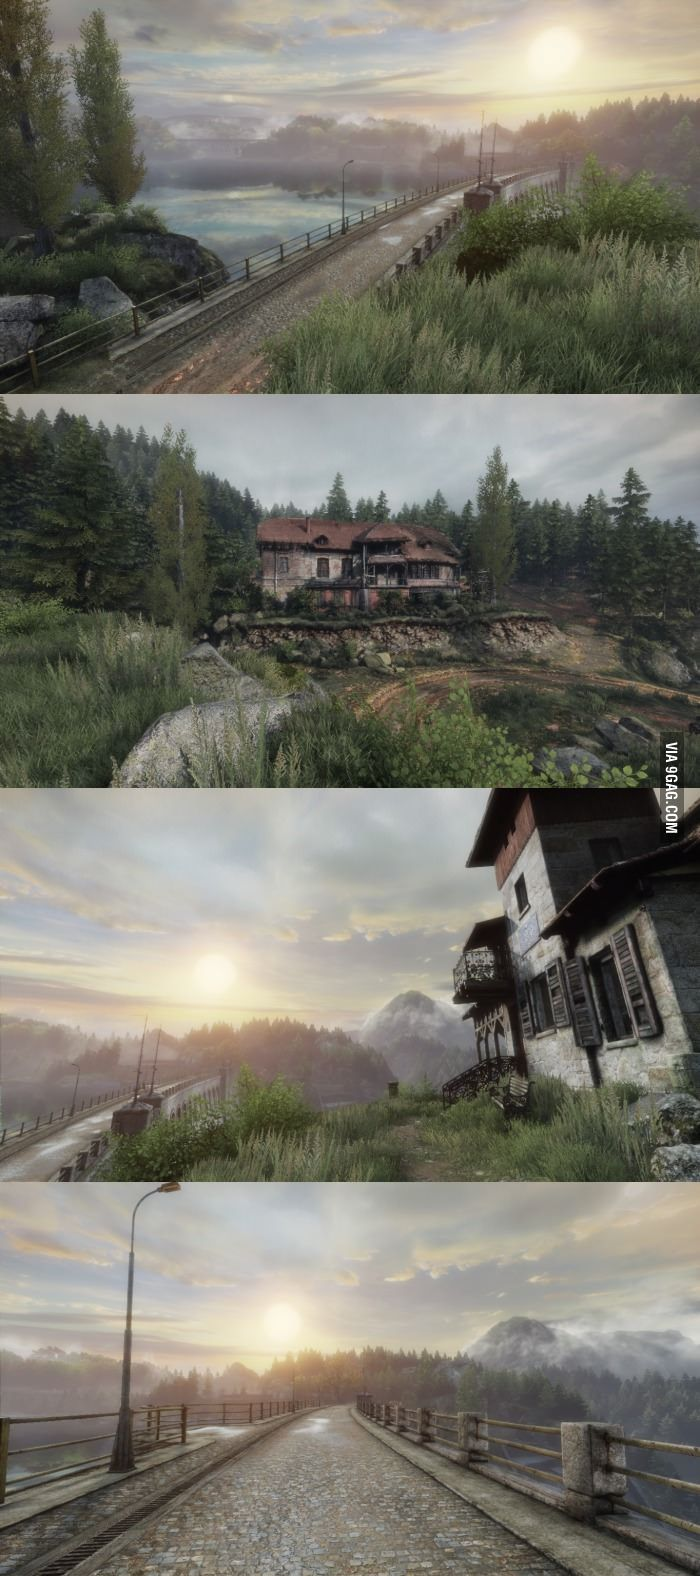 Gaming has gone to a whole new level (The Vanishing of Ethan Carter)